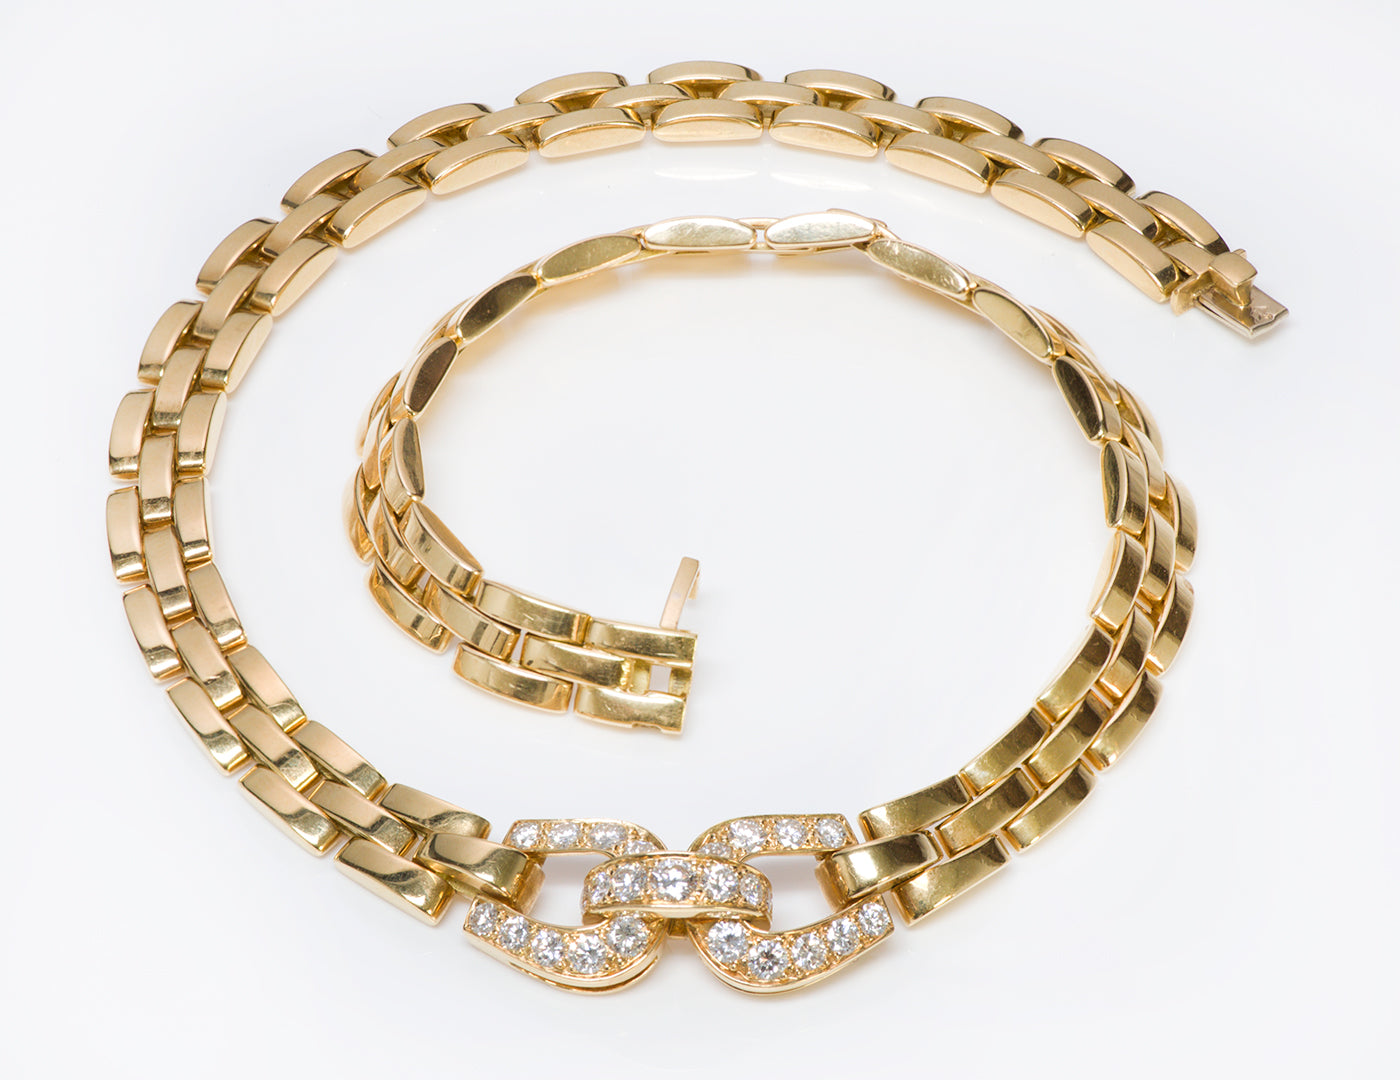 Cartier maillon necklace